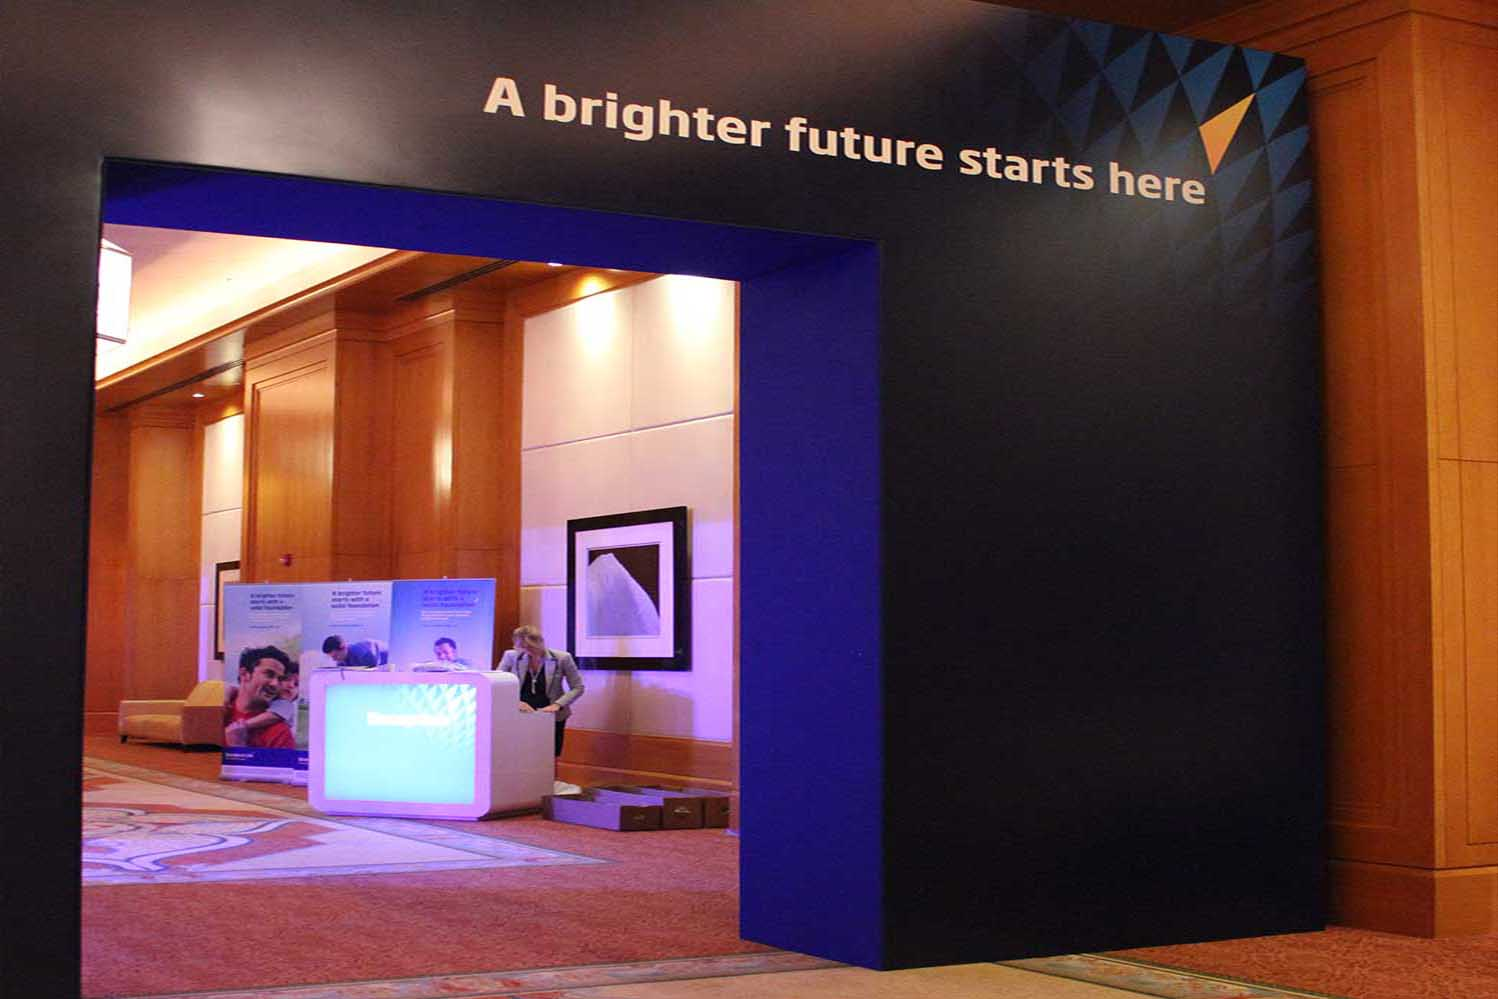 Branded-archway-at-insurance-launch-event-dubai Standard Life